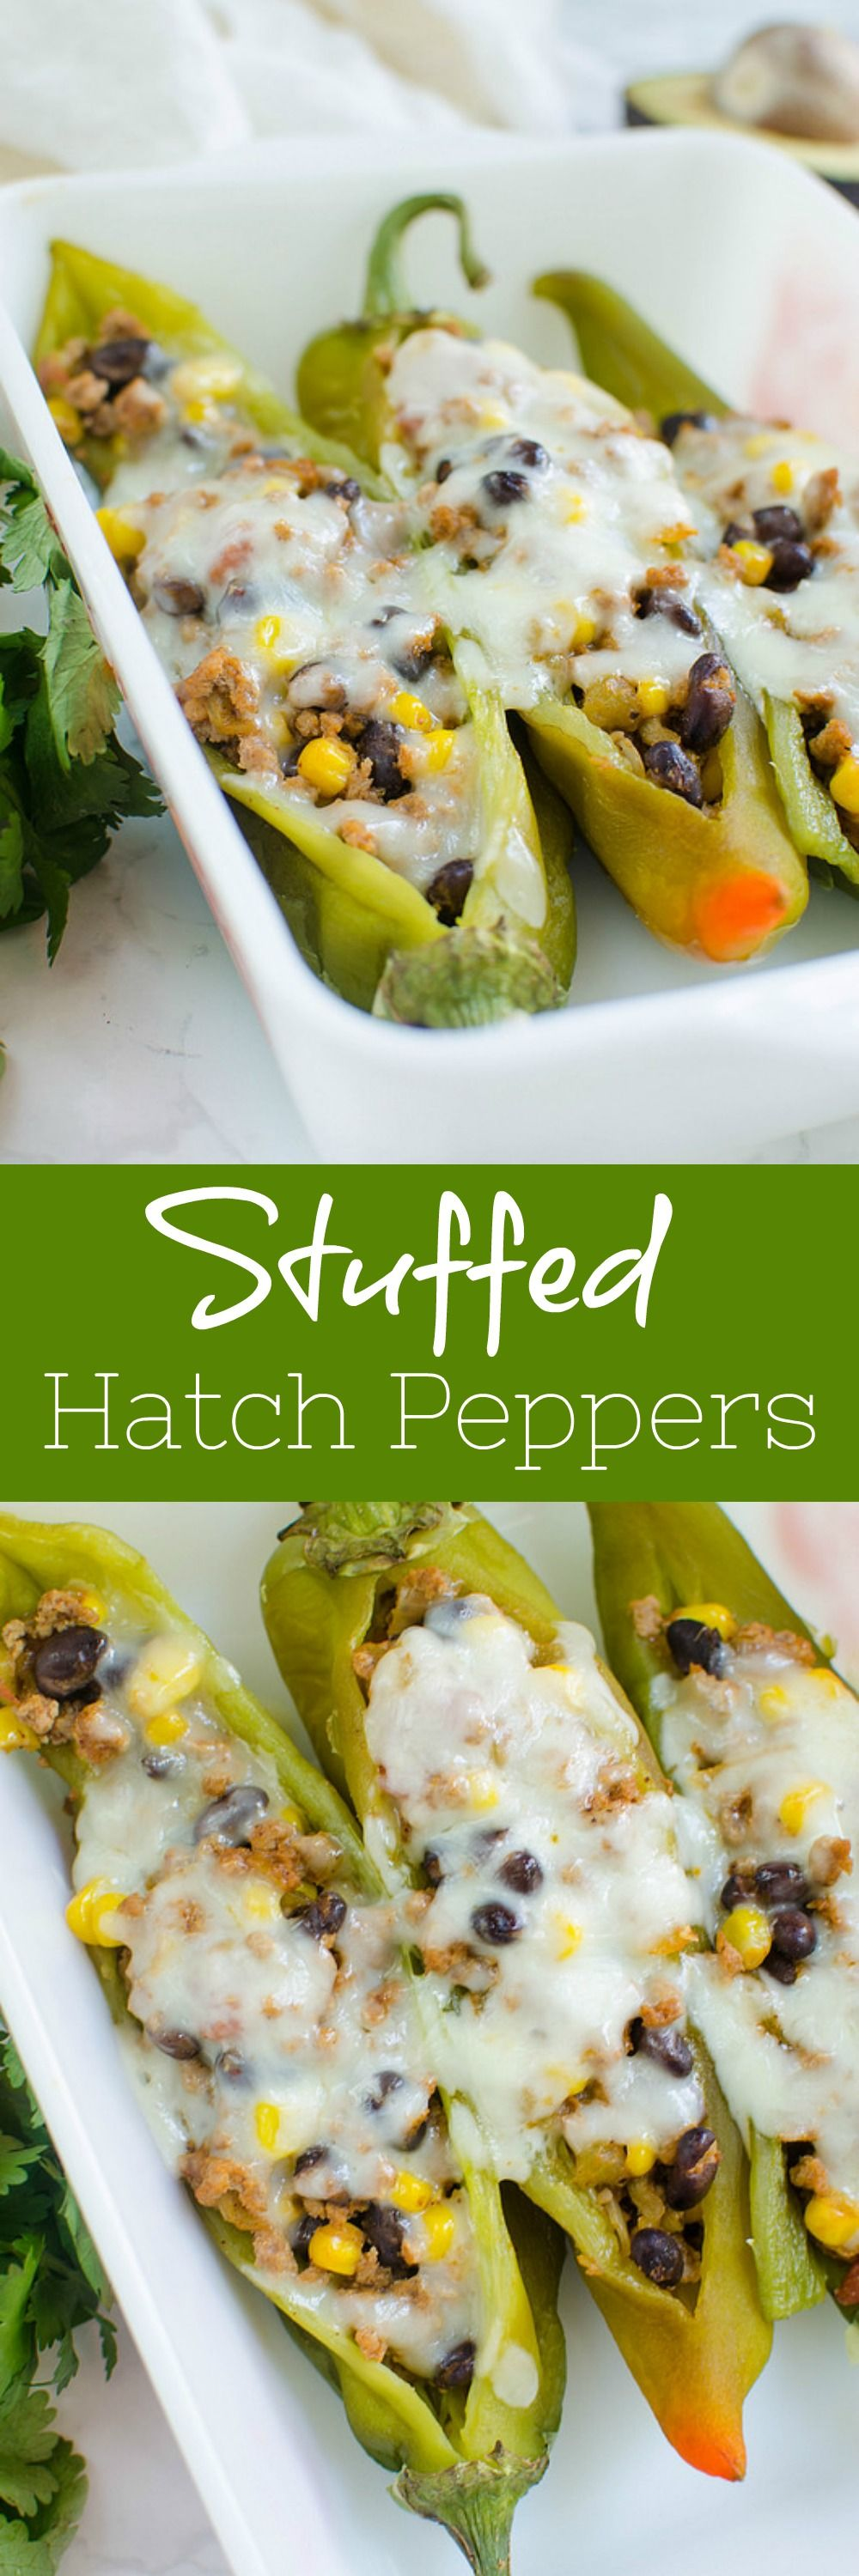 Stuffed Hatch Peppers Delicious Spicy Hatch Chiles Stuffed With Ground Turkey Black Beans Corn S Stuffed Peppers Hatch Peppers Recipes With Banana Peppers